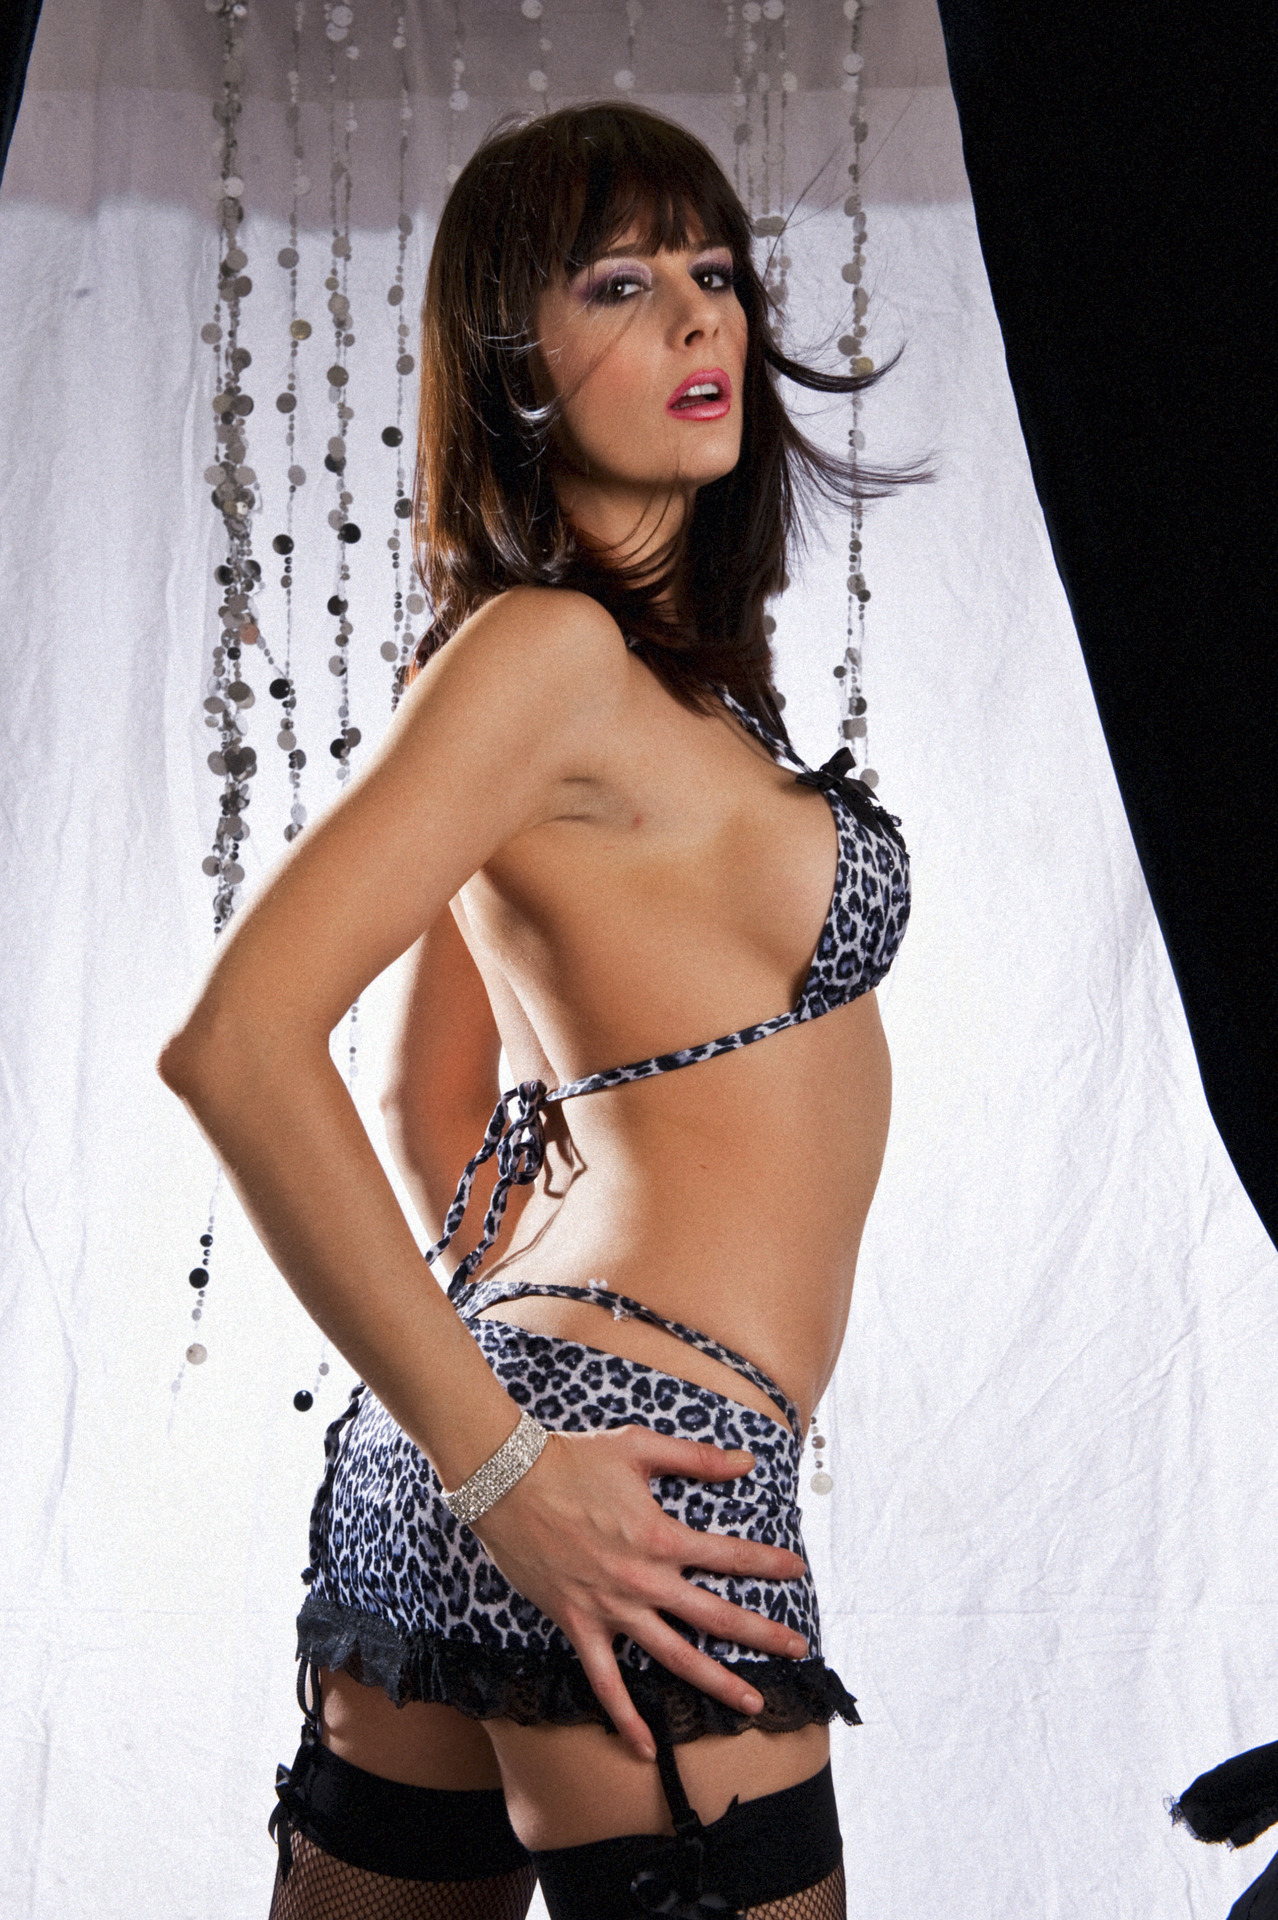 Karina Currie brunette babe in great and black lepoard print bra and skirt with black stocking looking over her shoulder